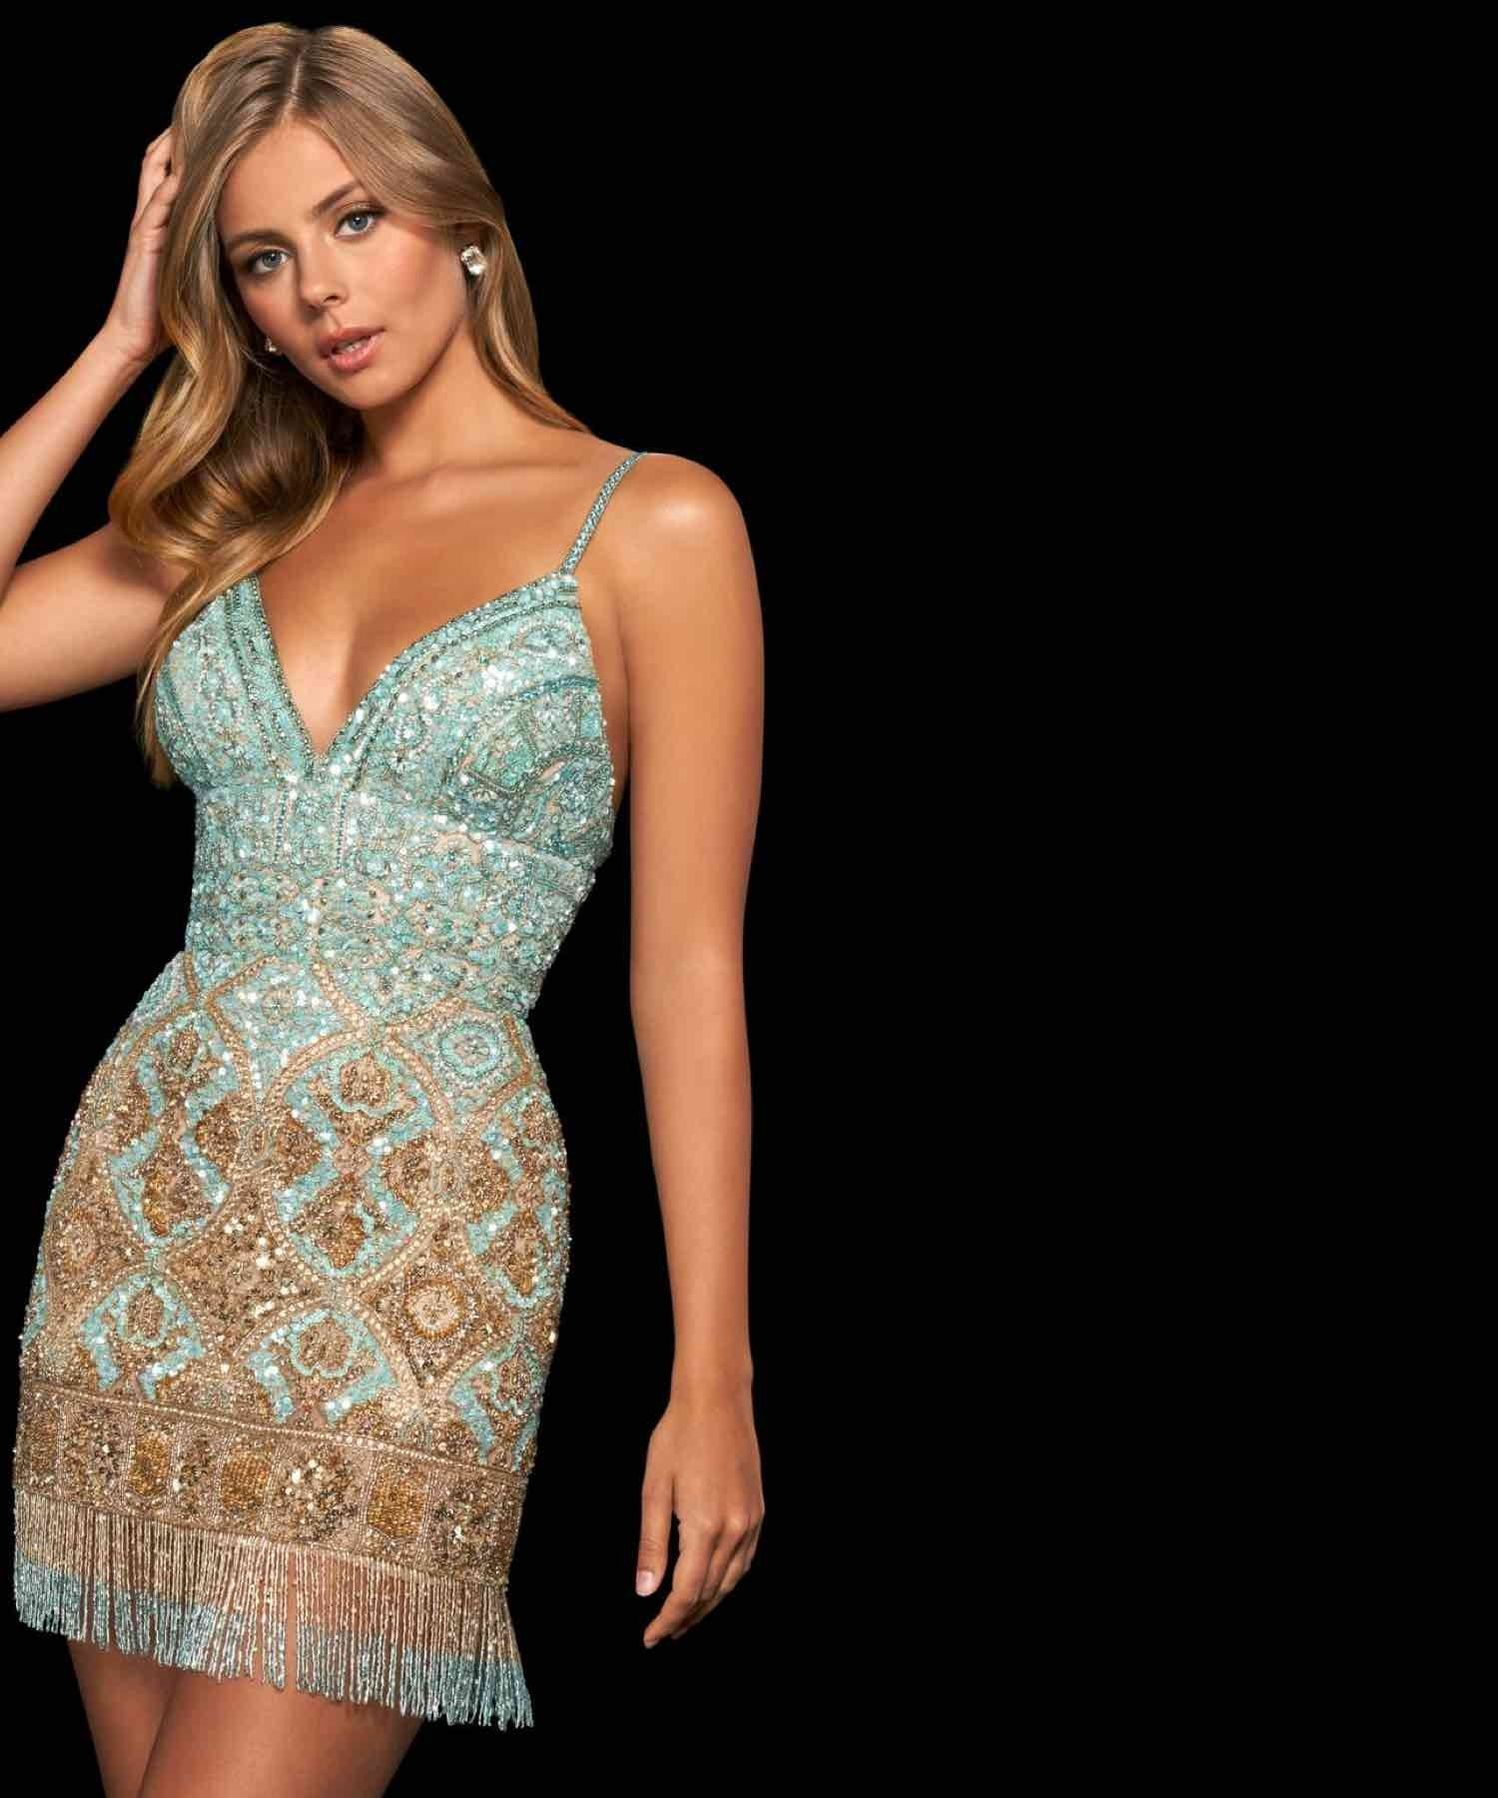 Woman with blonde hair wearing Sherri Hill homecoming dress